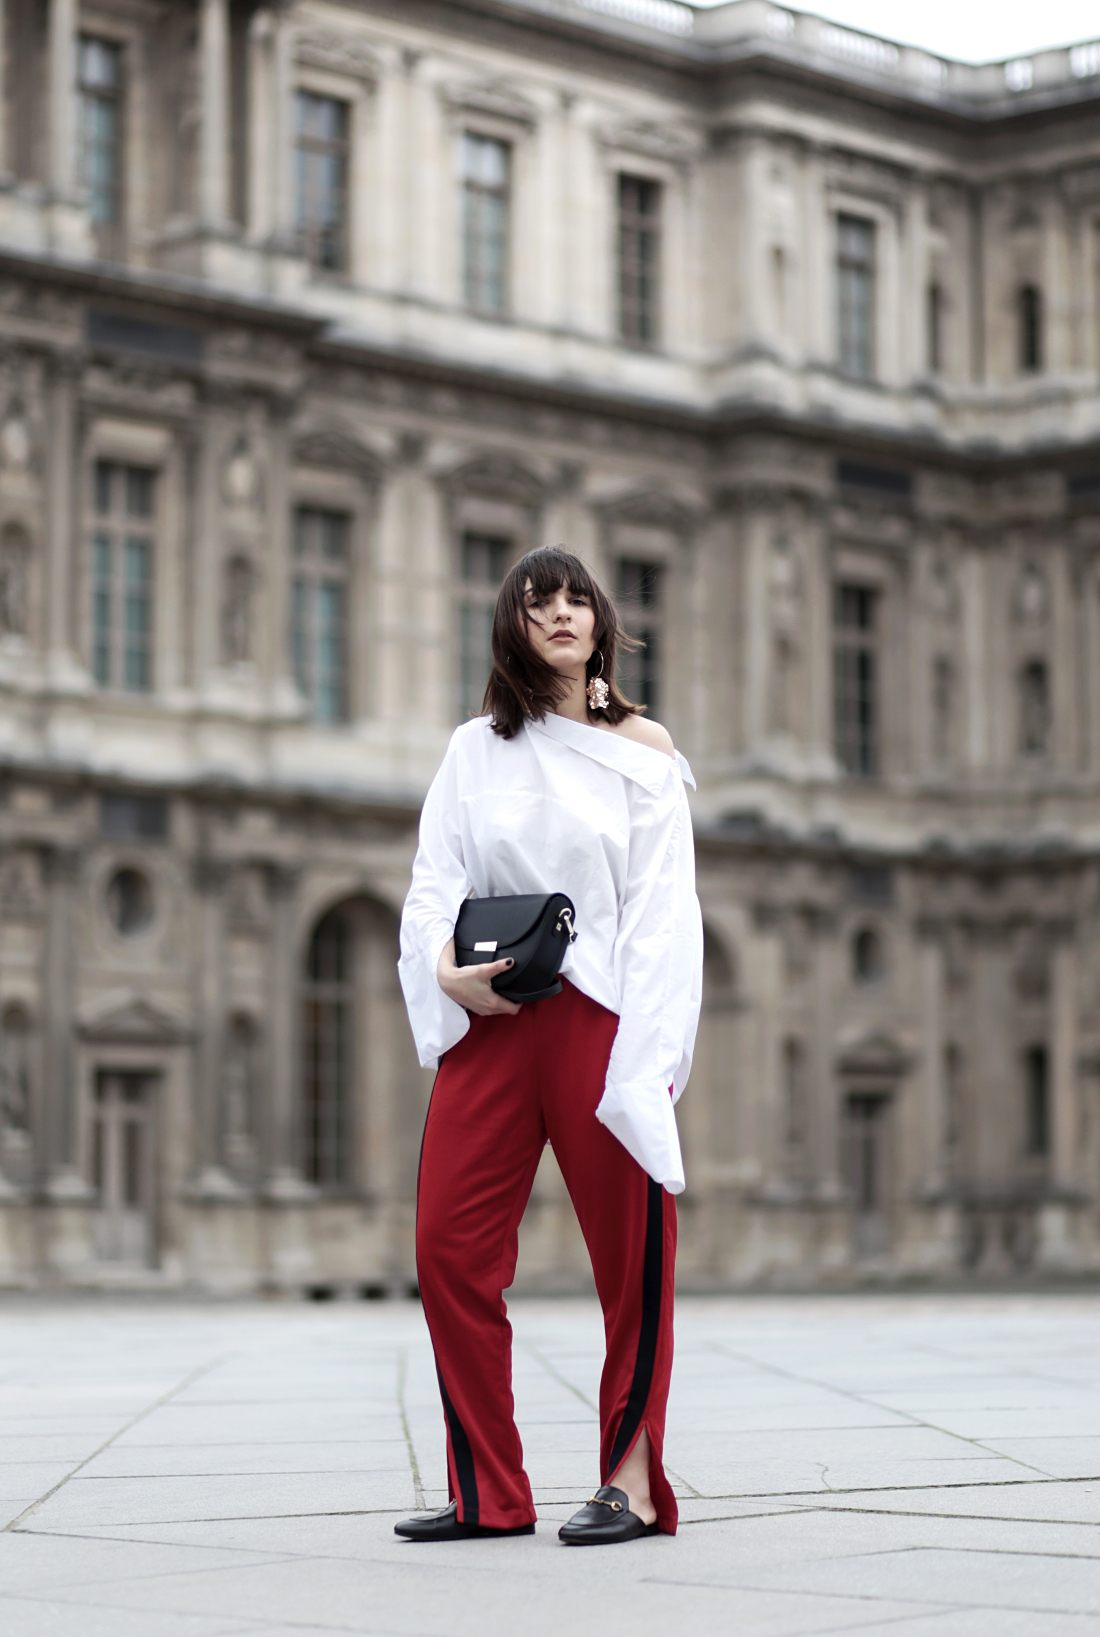 AnaisEleni_FashionBlog_Paris_Gucci_Princetown_Slipper_Red_Pants_Athleisure_HMTrend_Blouse_bigsleeves_statement_earrings_celine_lookalike.02.17-8